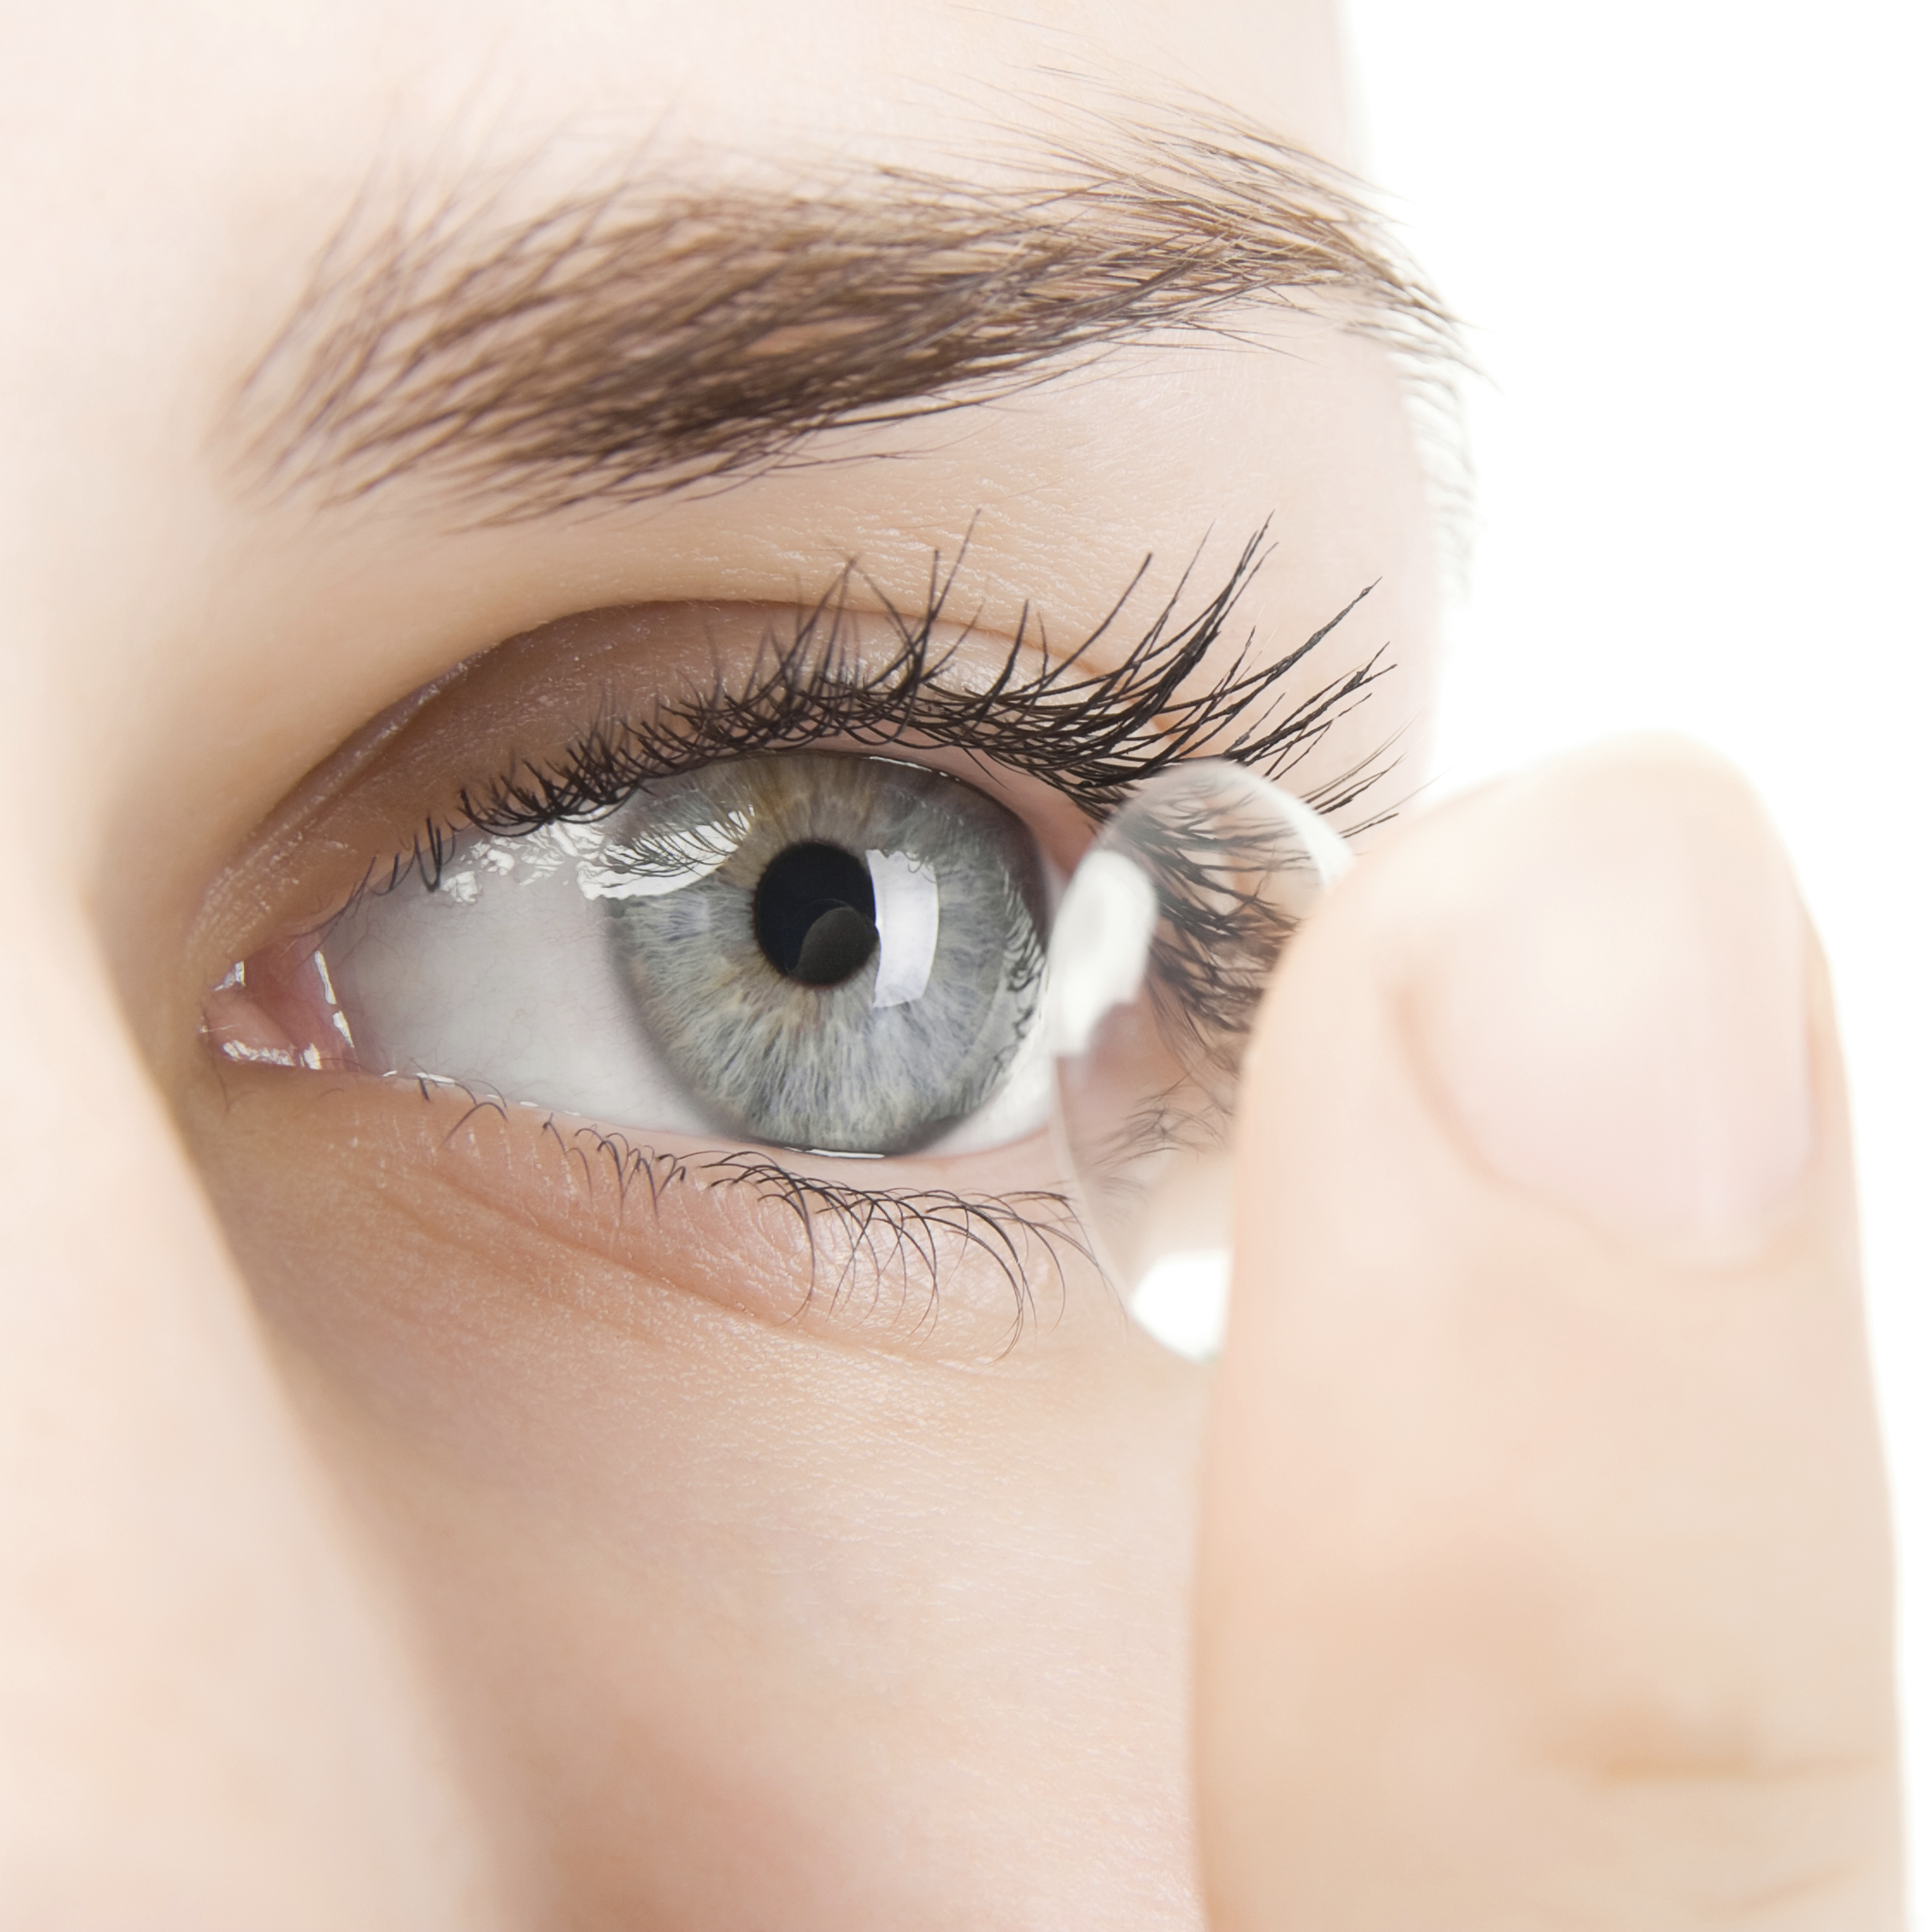 Stock photo of a contact lens.